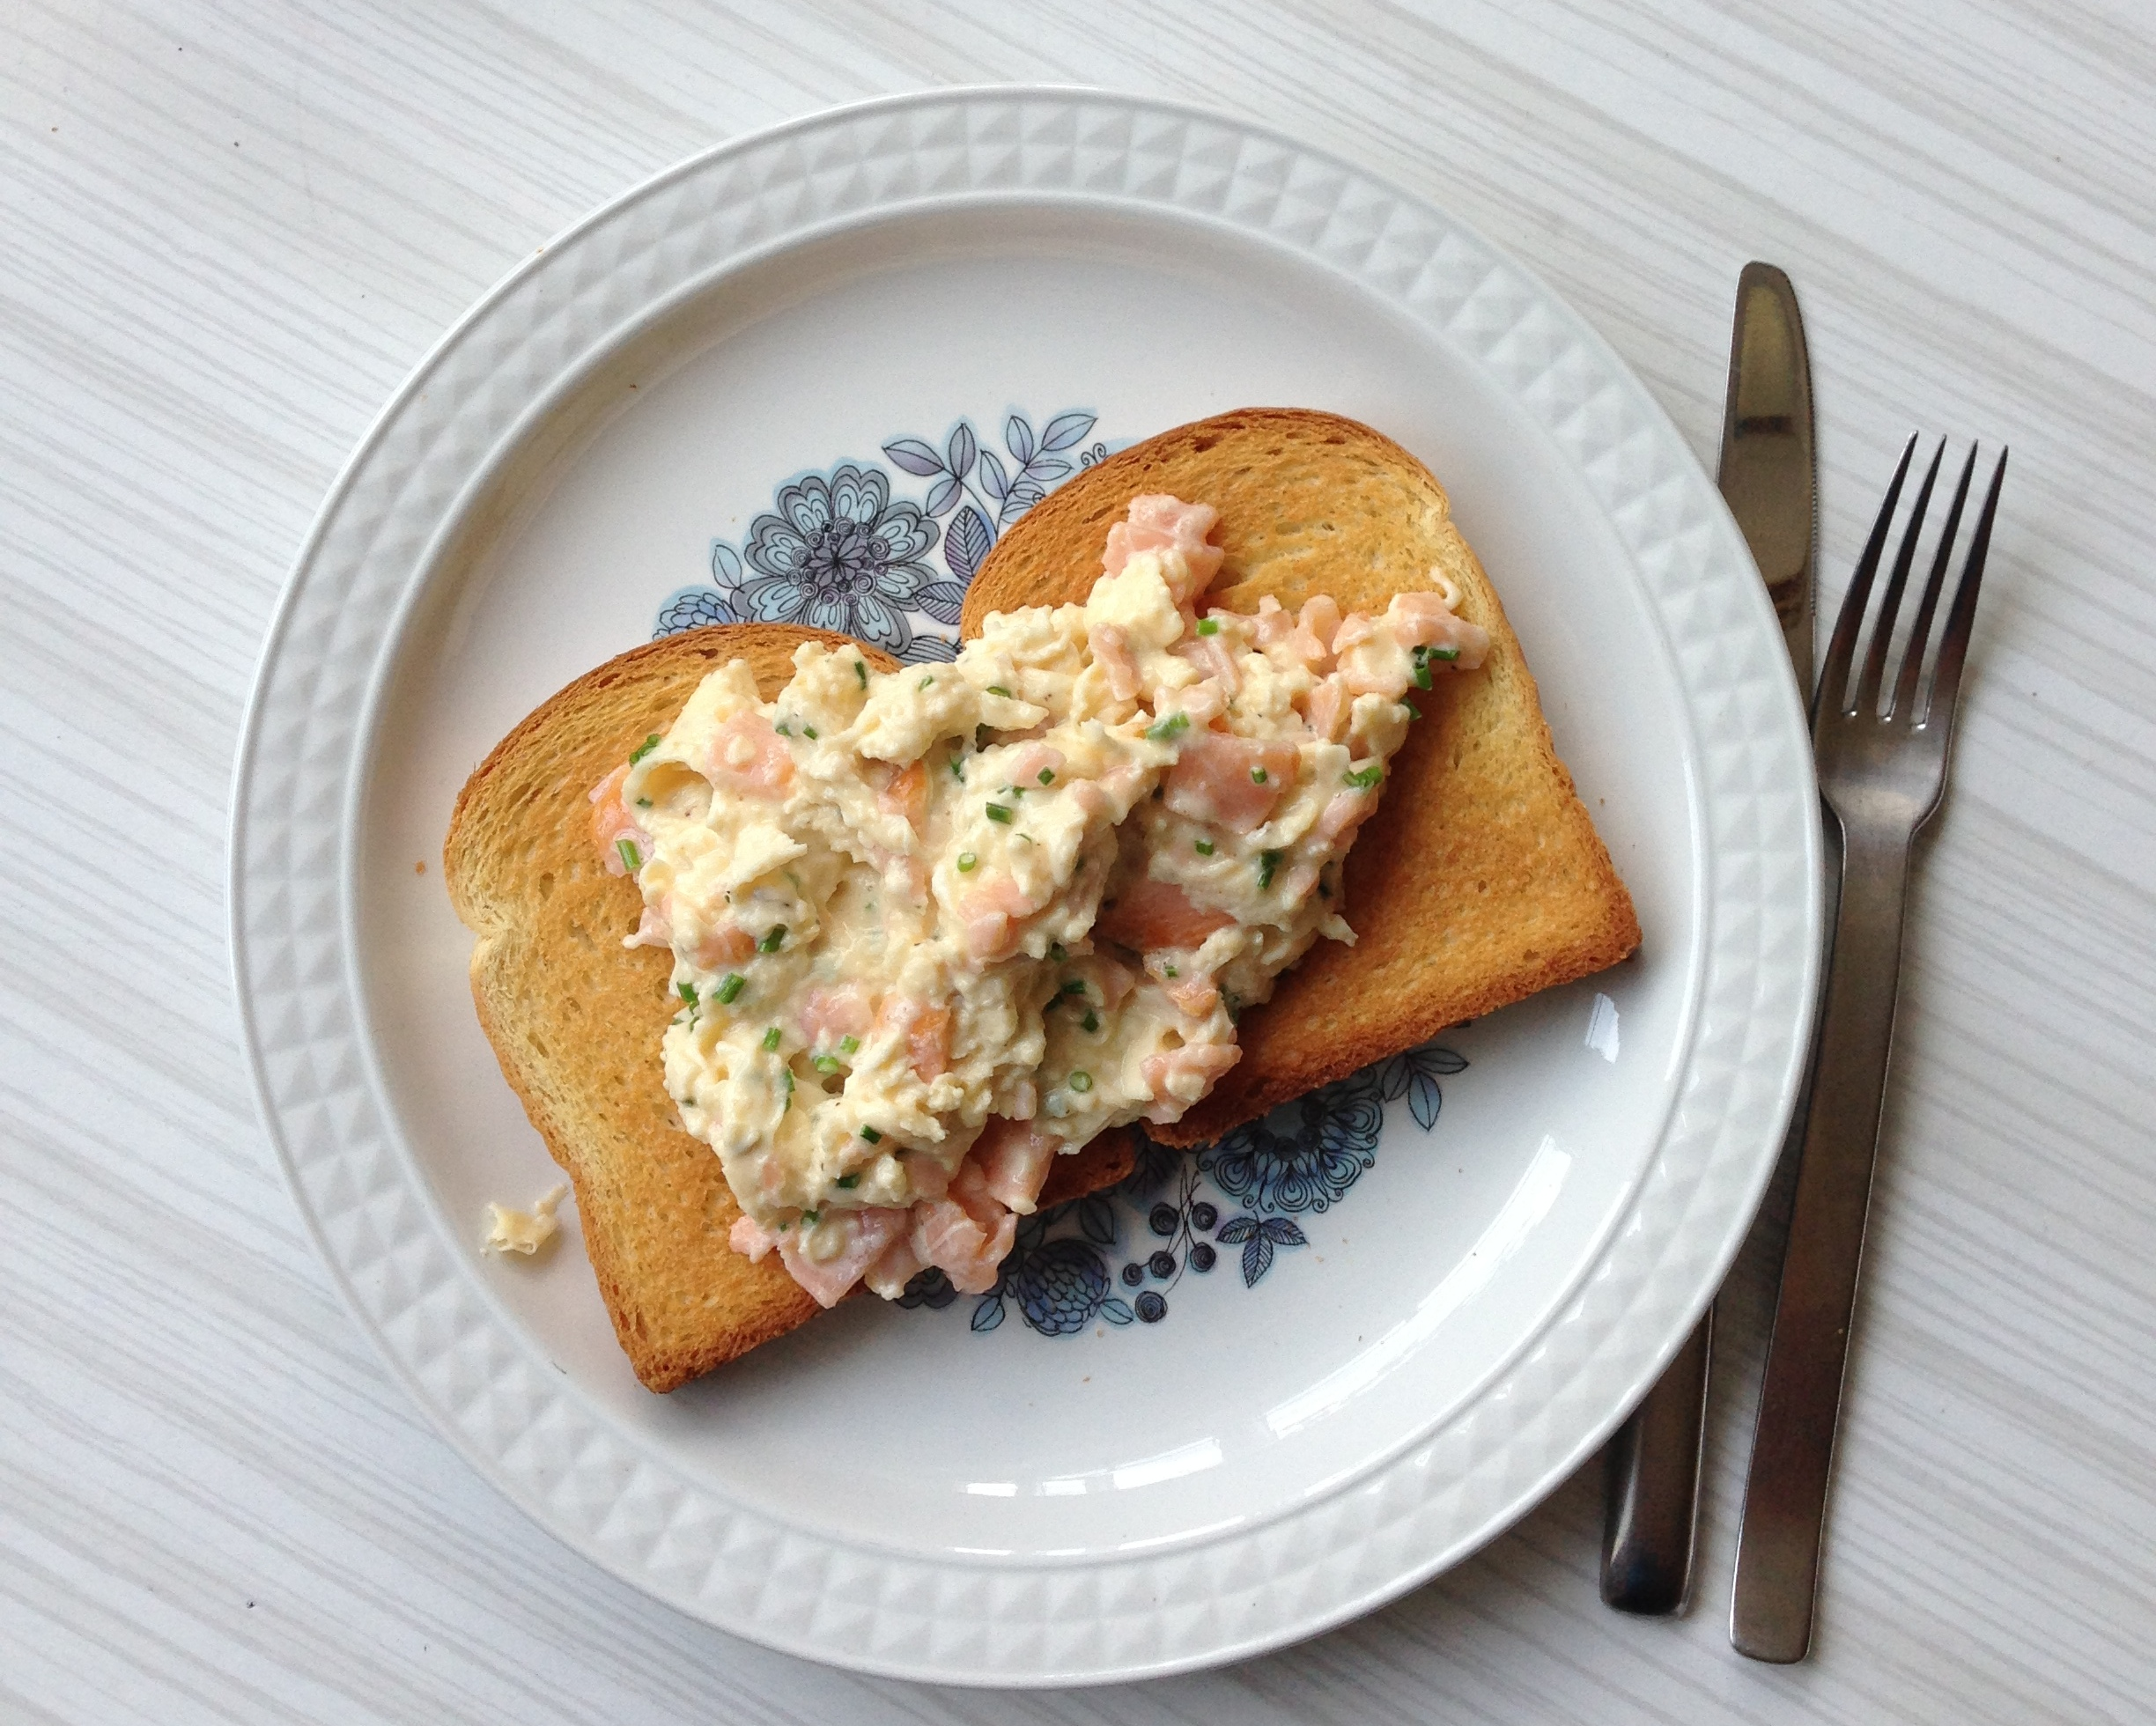 Beachhutcook's Smoked Salmon and Chive Scrambled Eggs